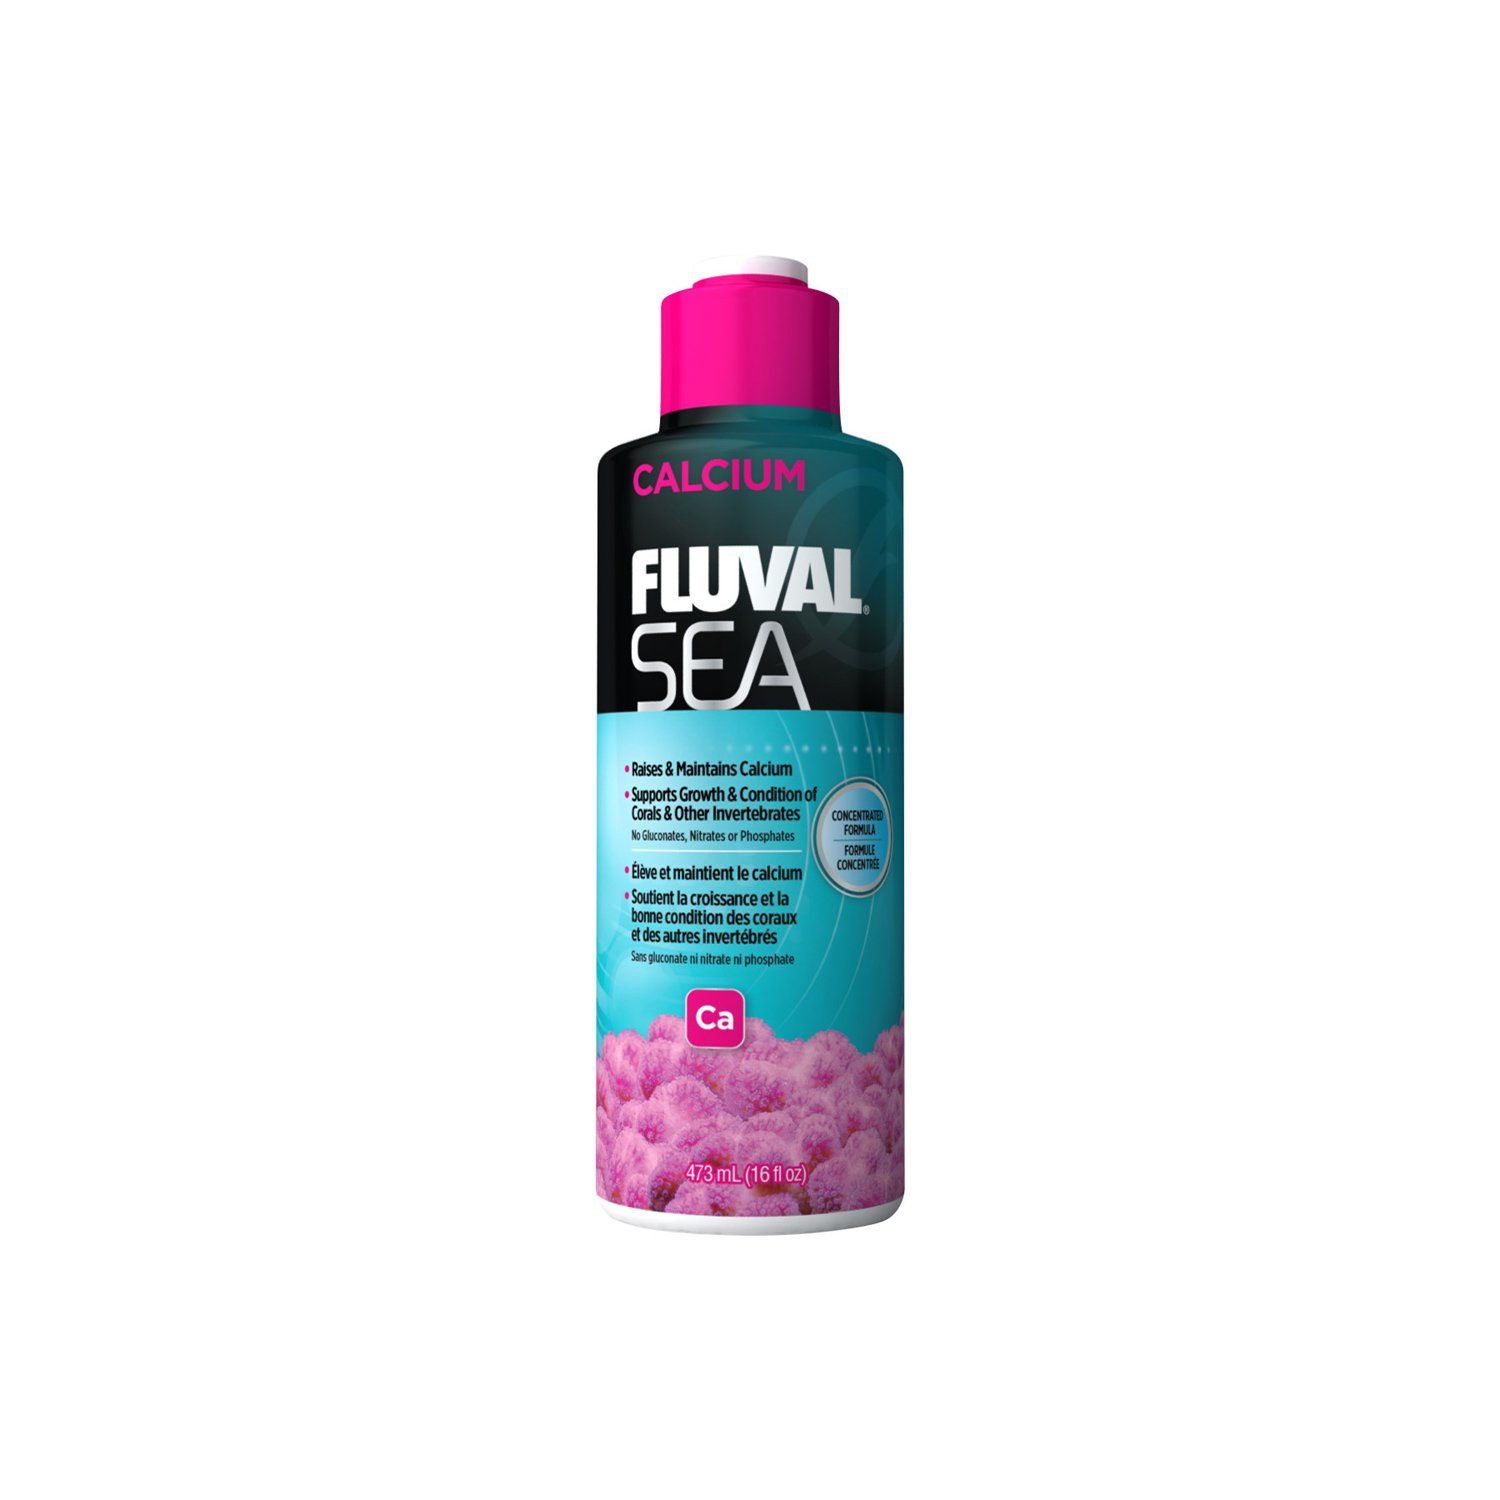 Fluval Sea Calcium 8 Oz Petco Calcium Petco Food Animals